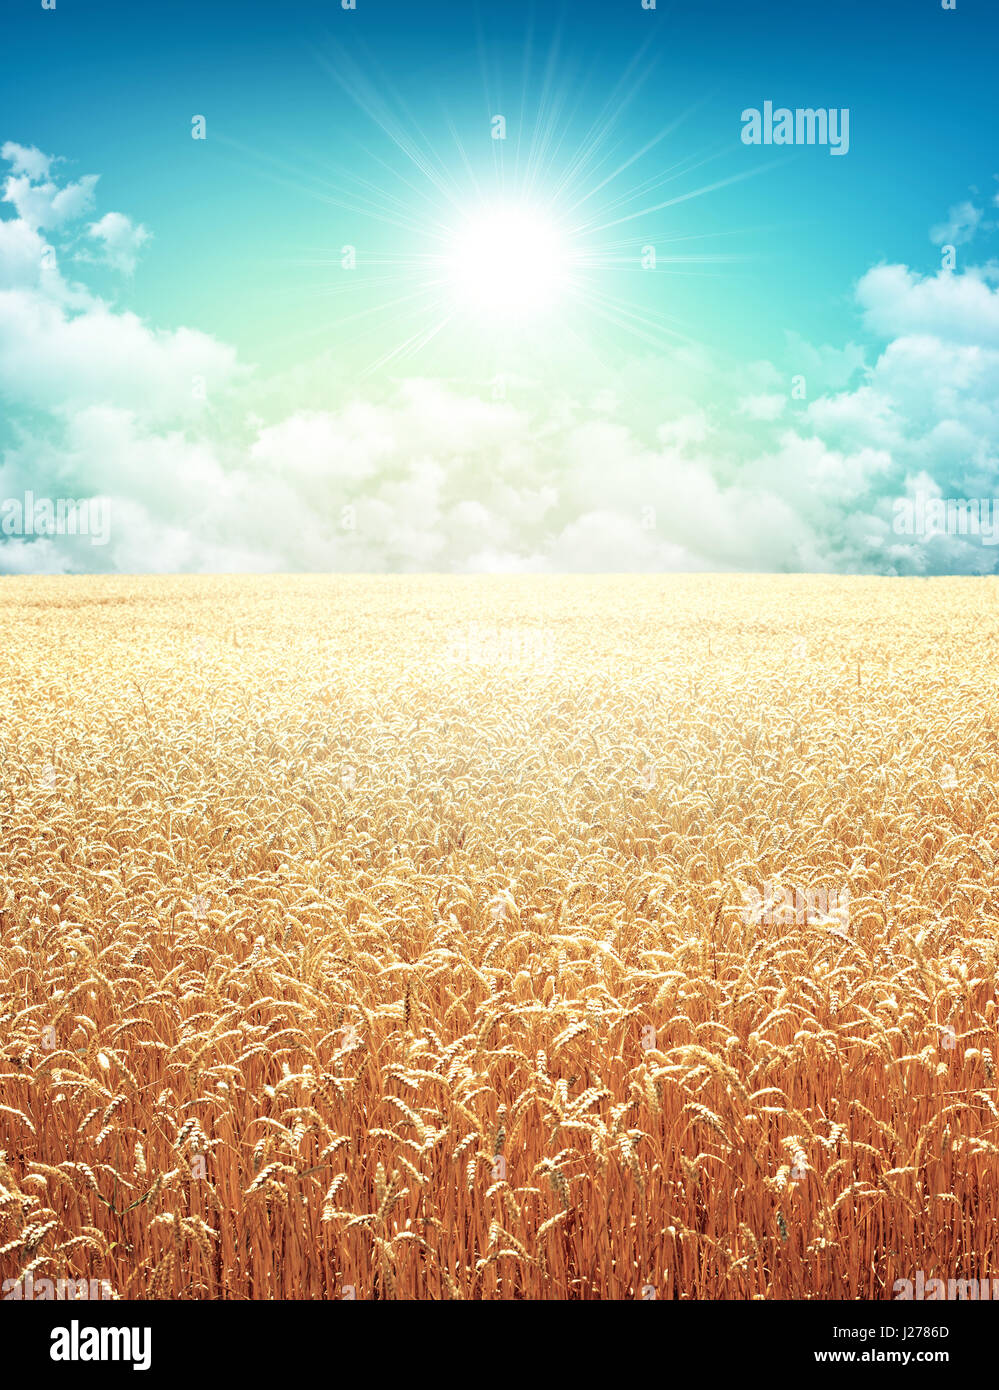 Golden wheat field growing slowly on a sunny morning sky - Stock Image